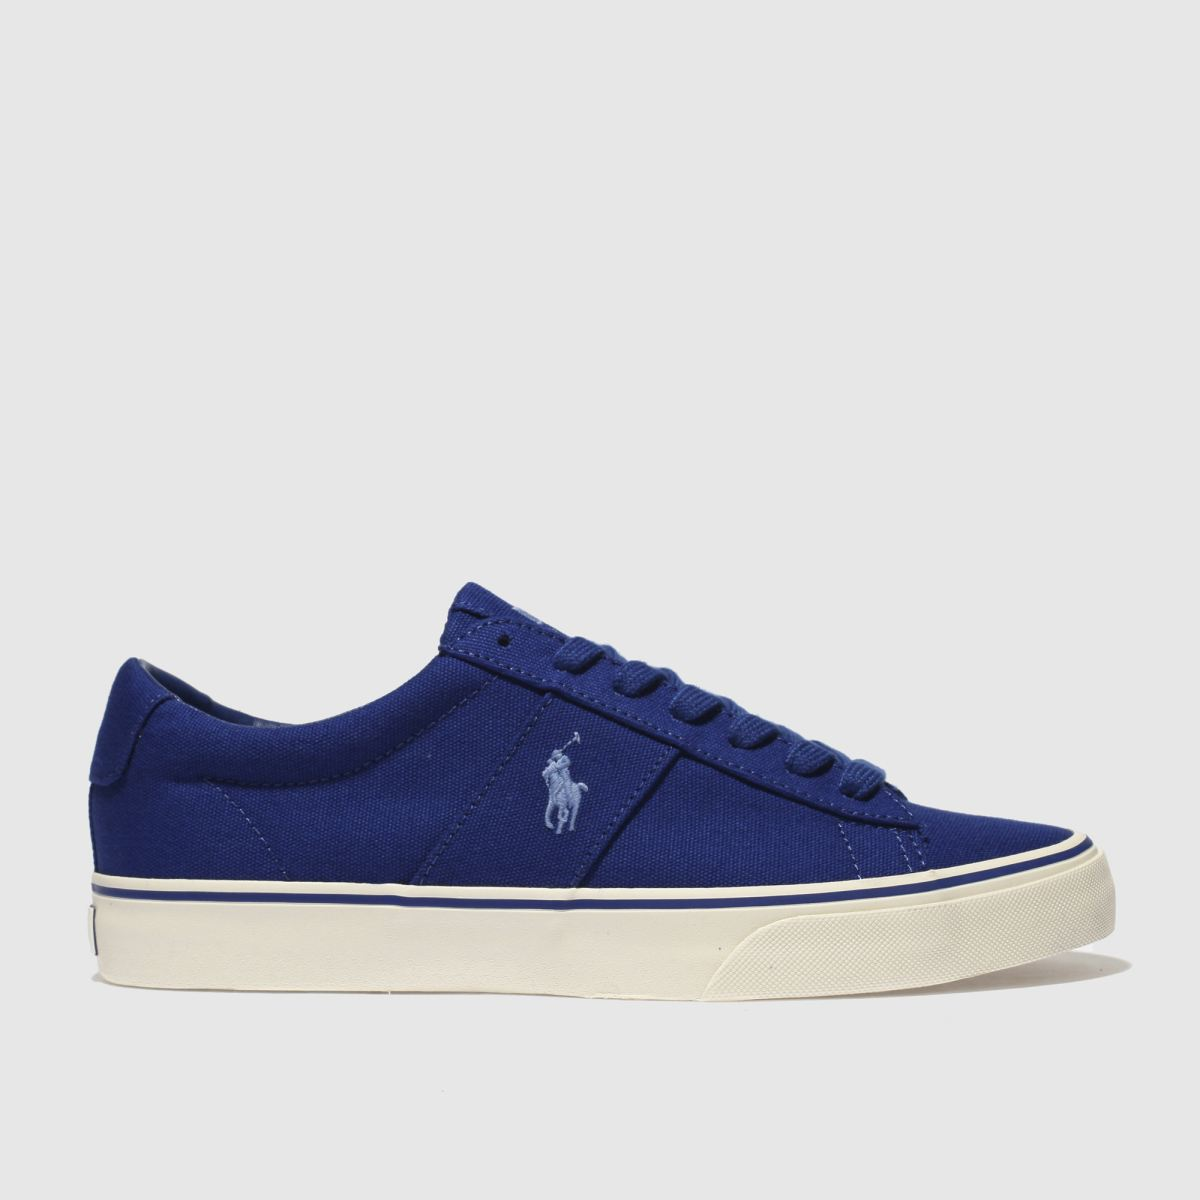 Polo Ralph Lauren Blue Sayer Ne Trainers